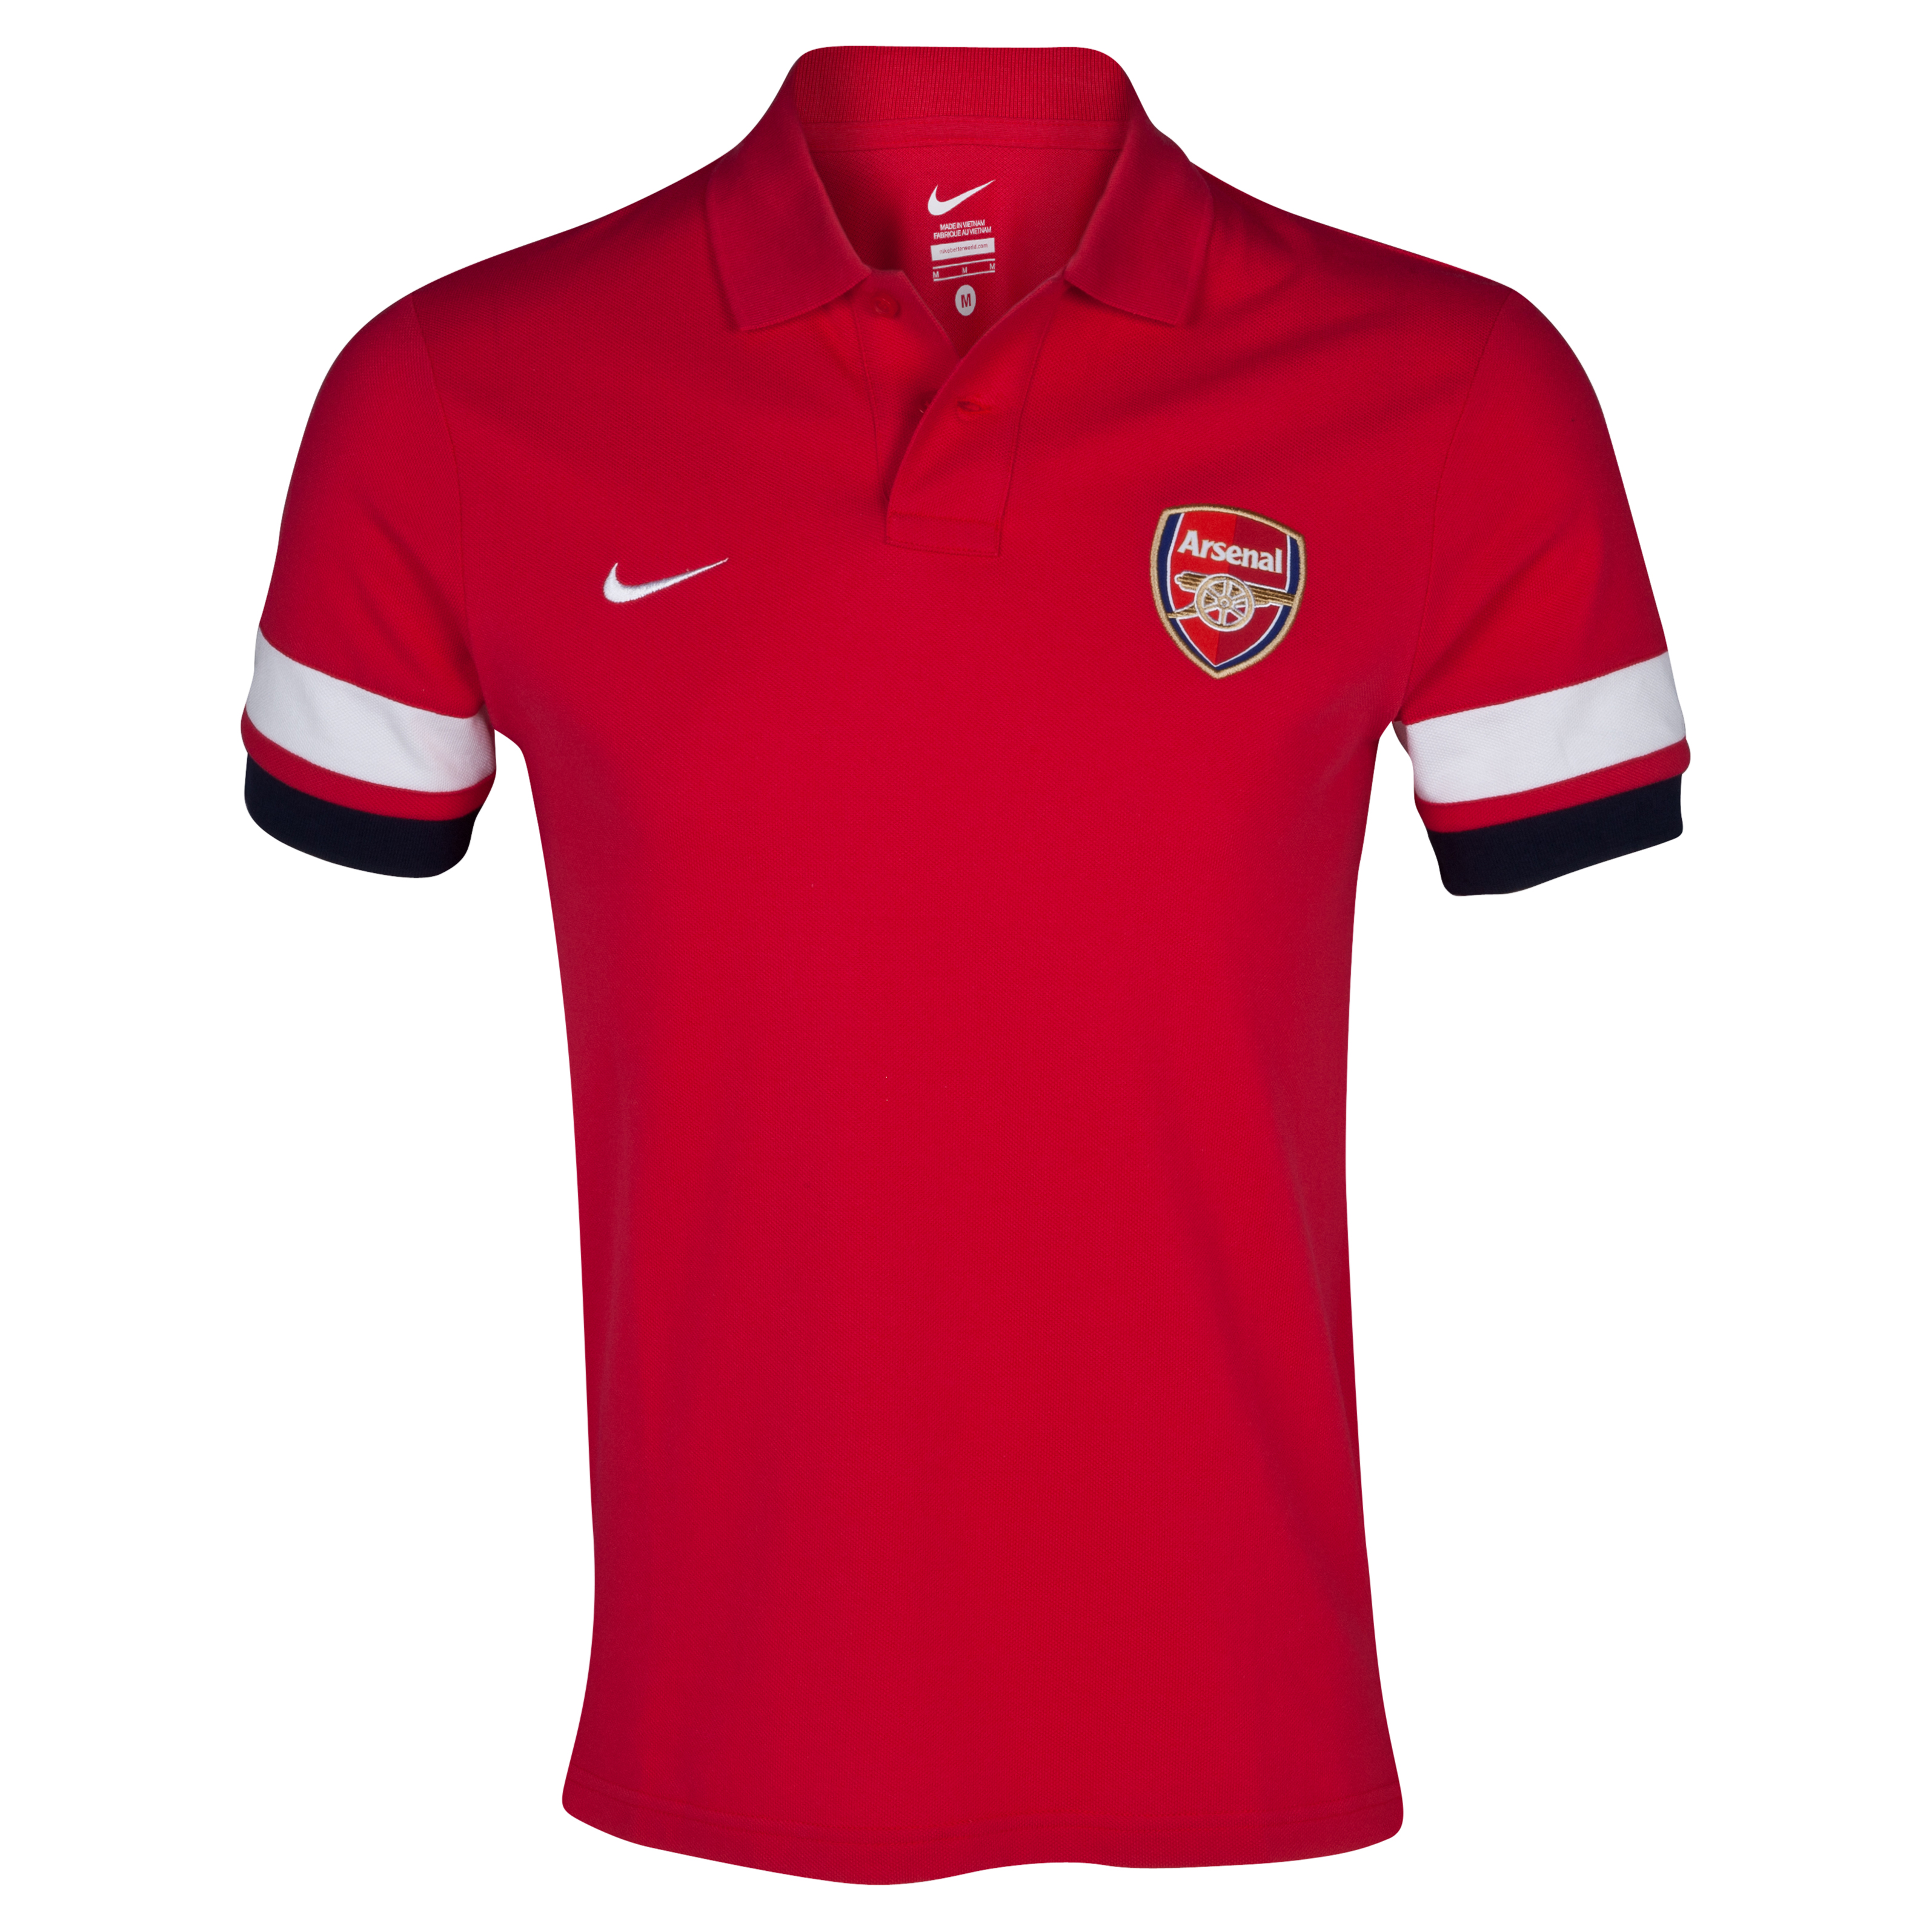 Arsenal Authentic Grandslam Polo - Artillery Red/White/Obsidian/White